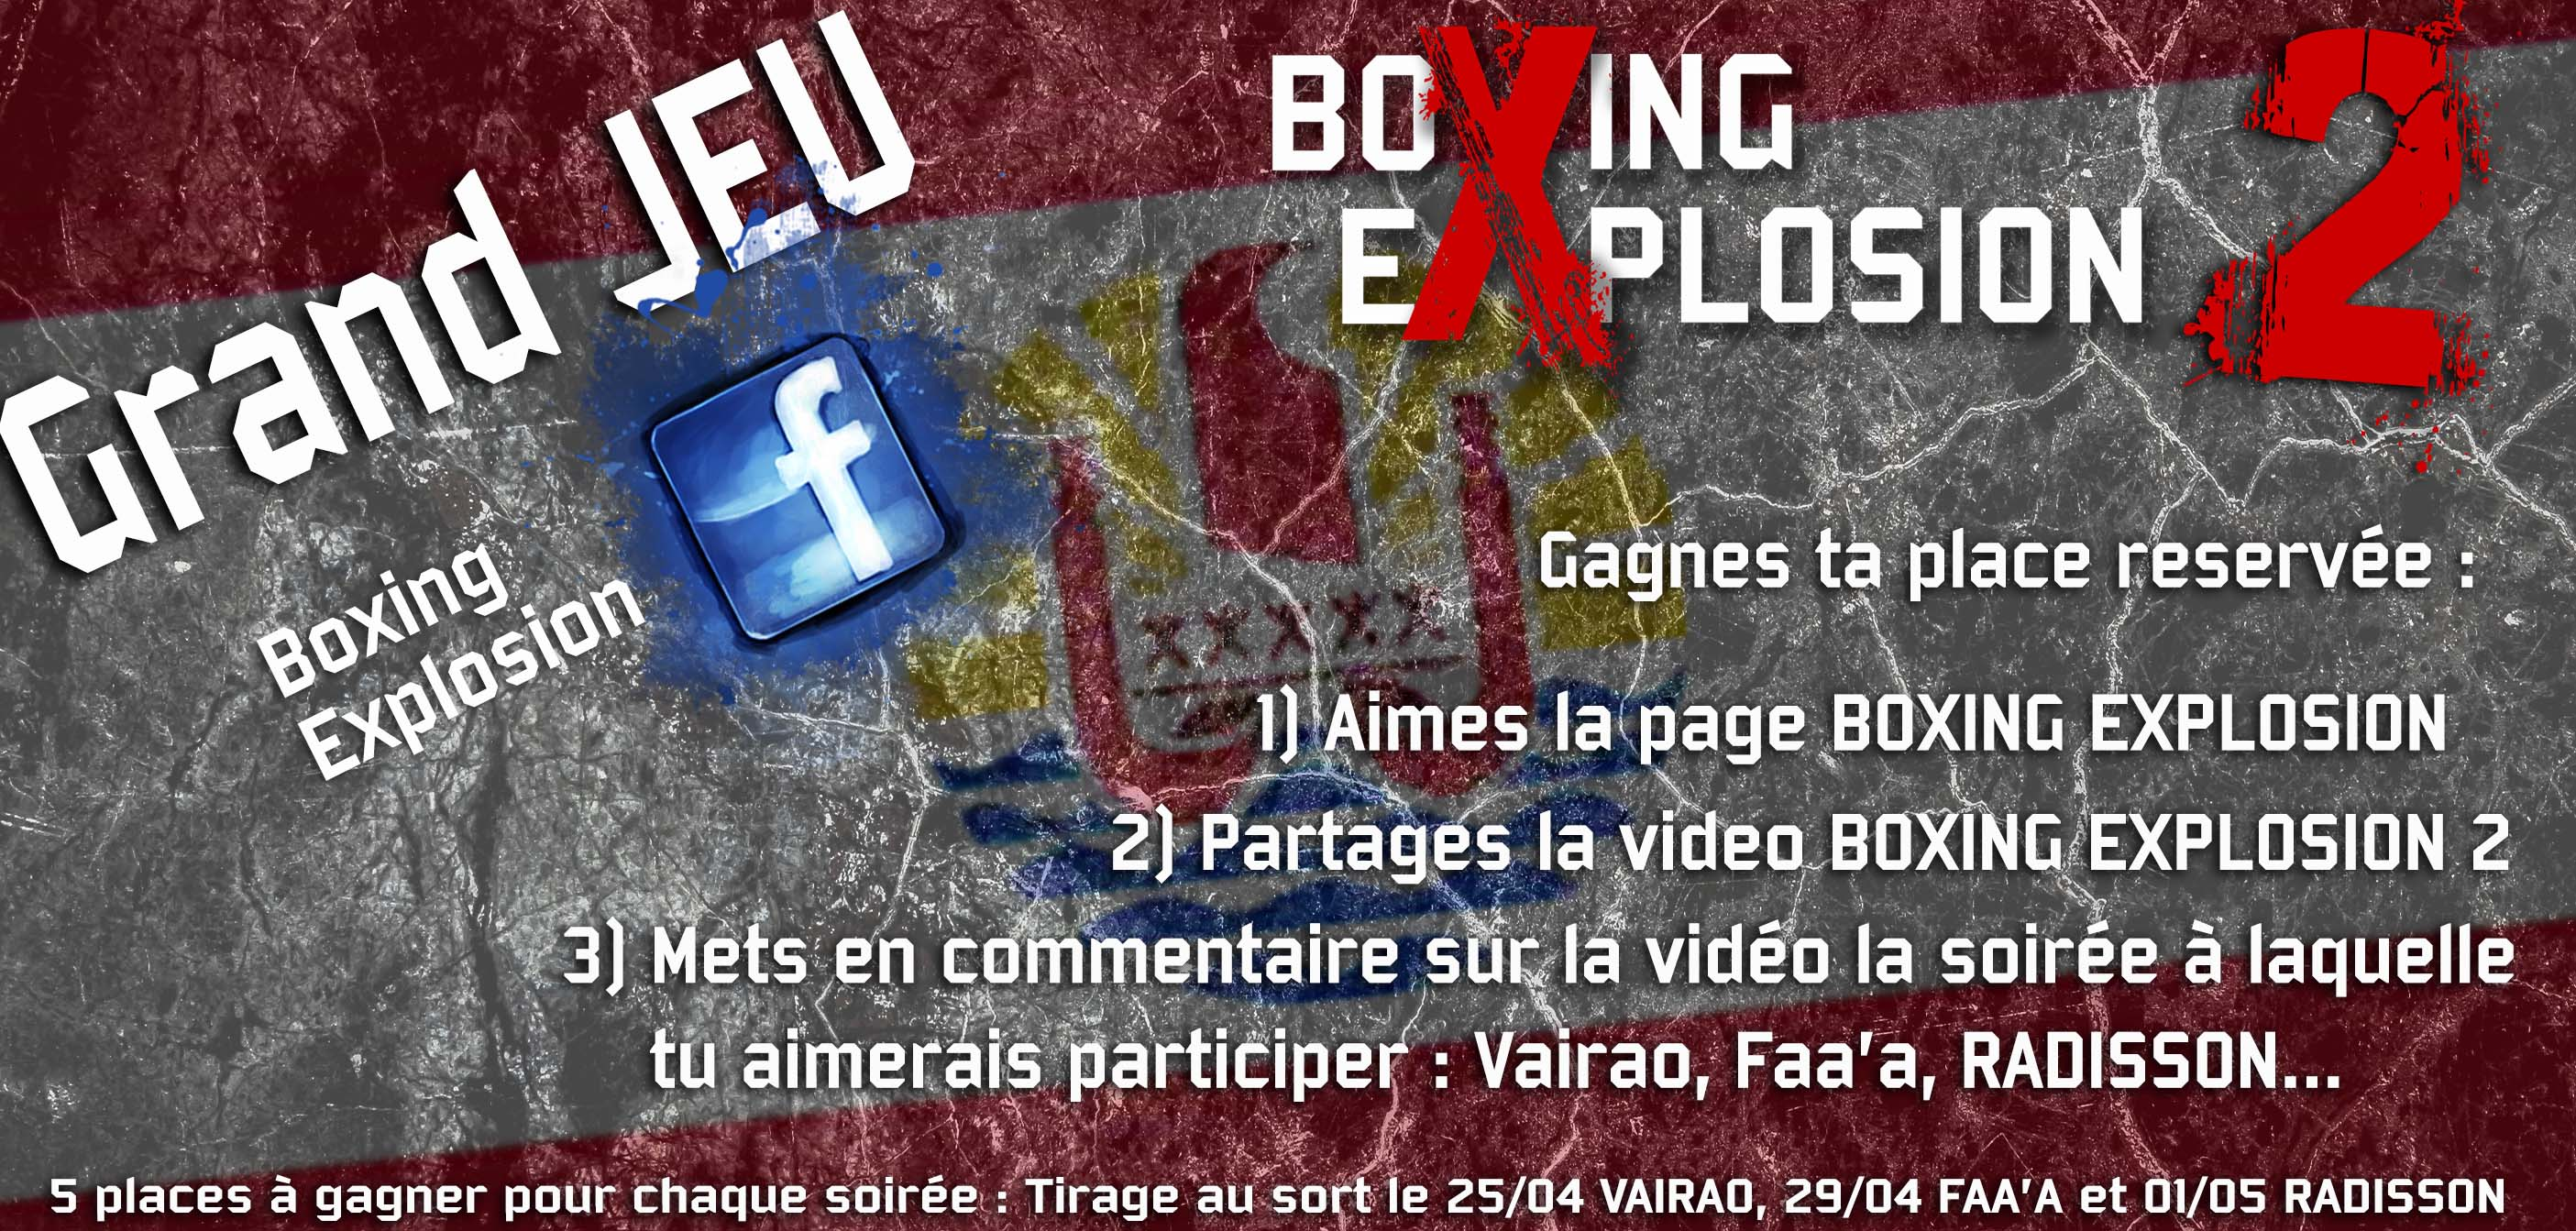 Tournoi International de Boxe: Boxing Explosion 2